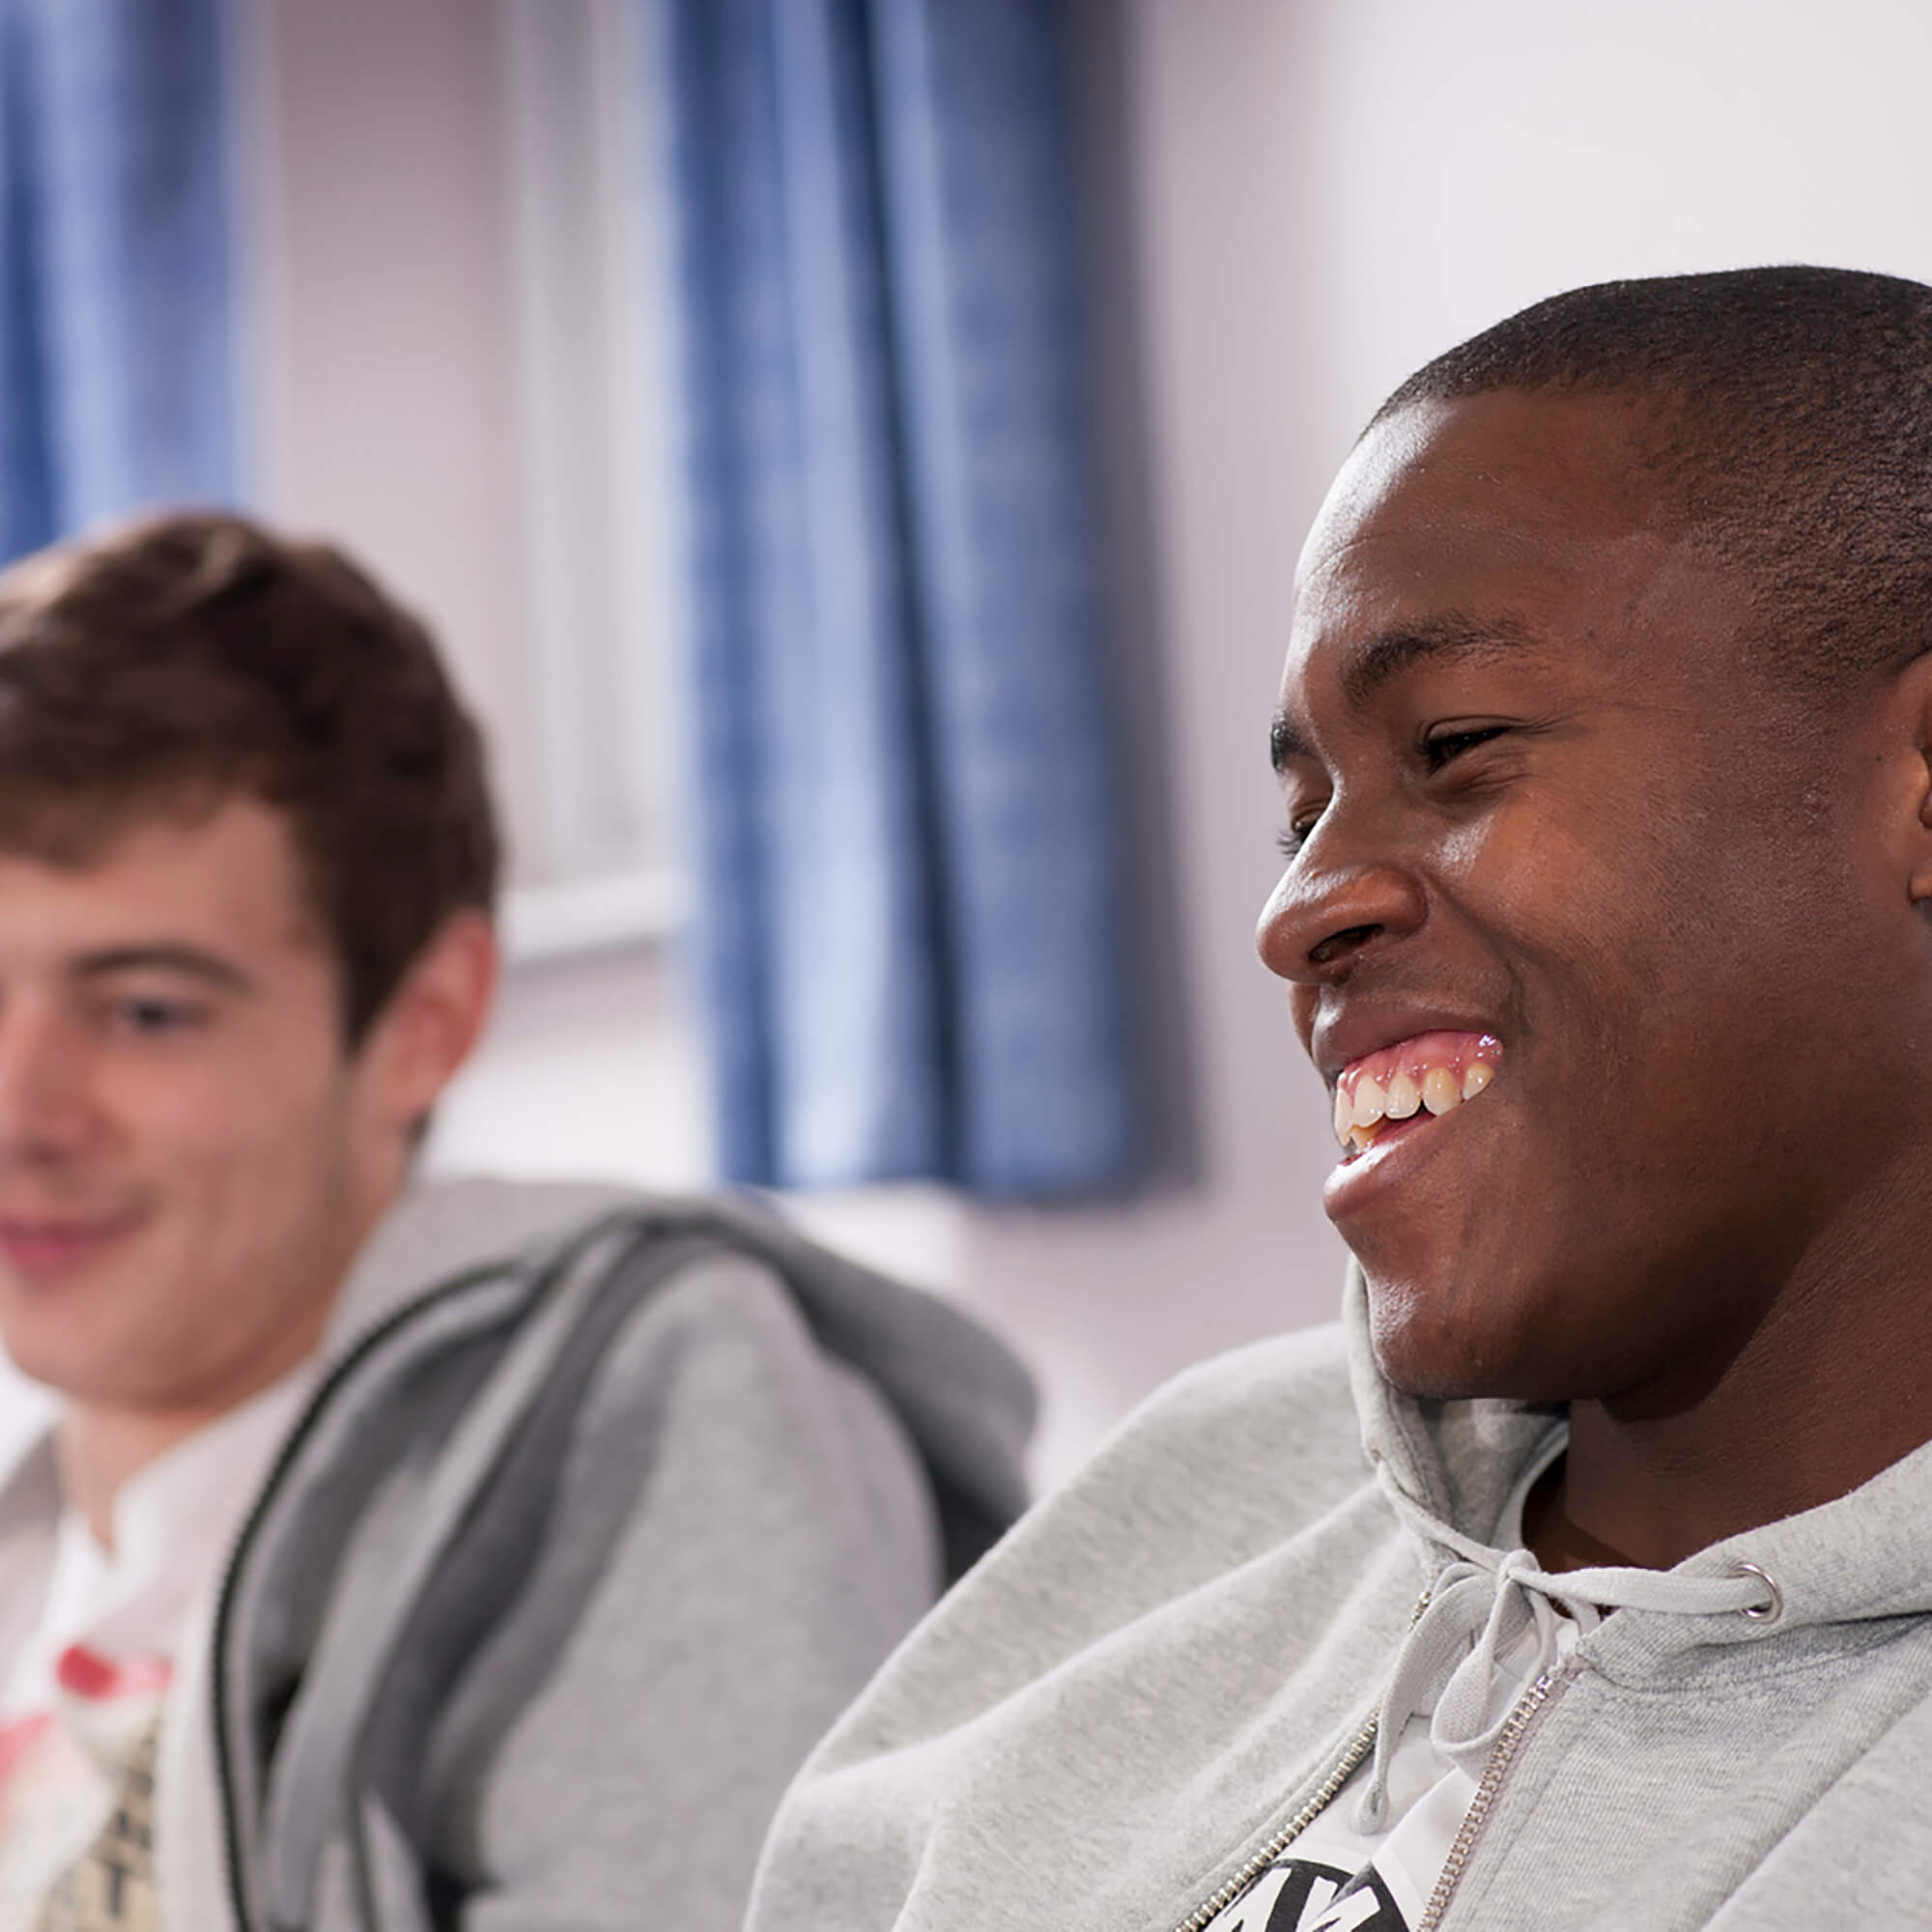 Two students sitting and smiling